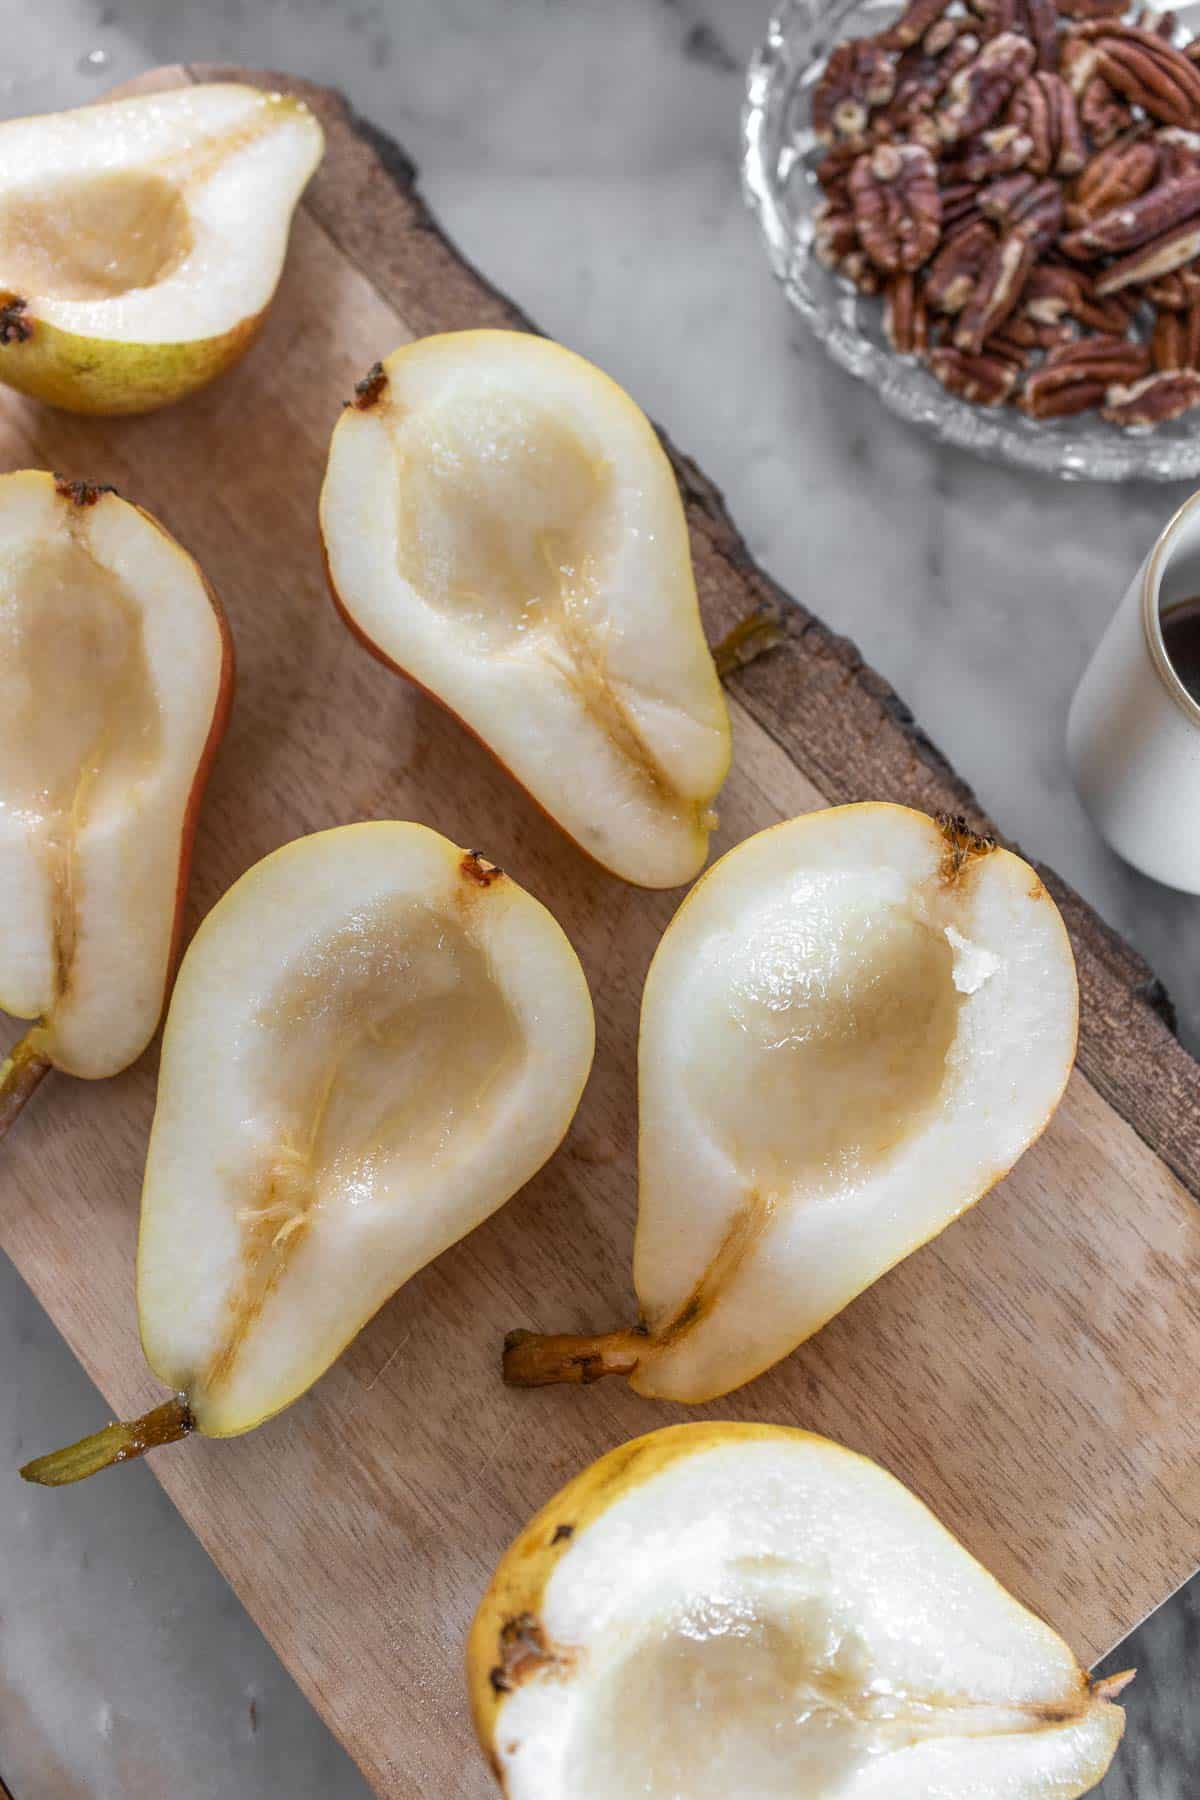 pears without the seeds